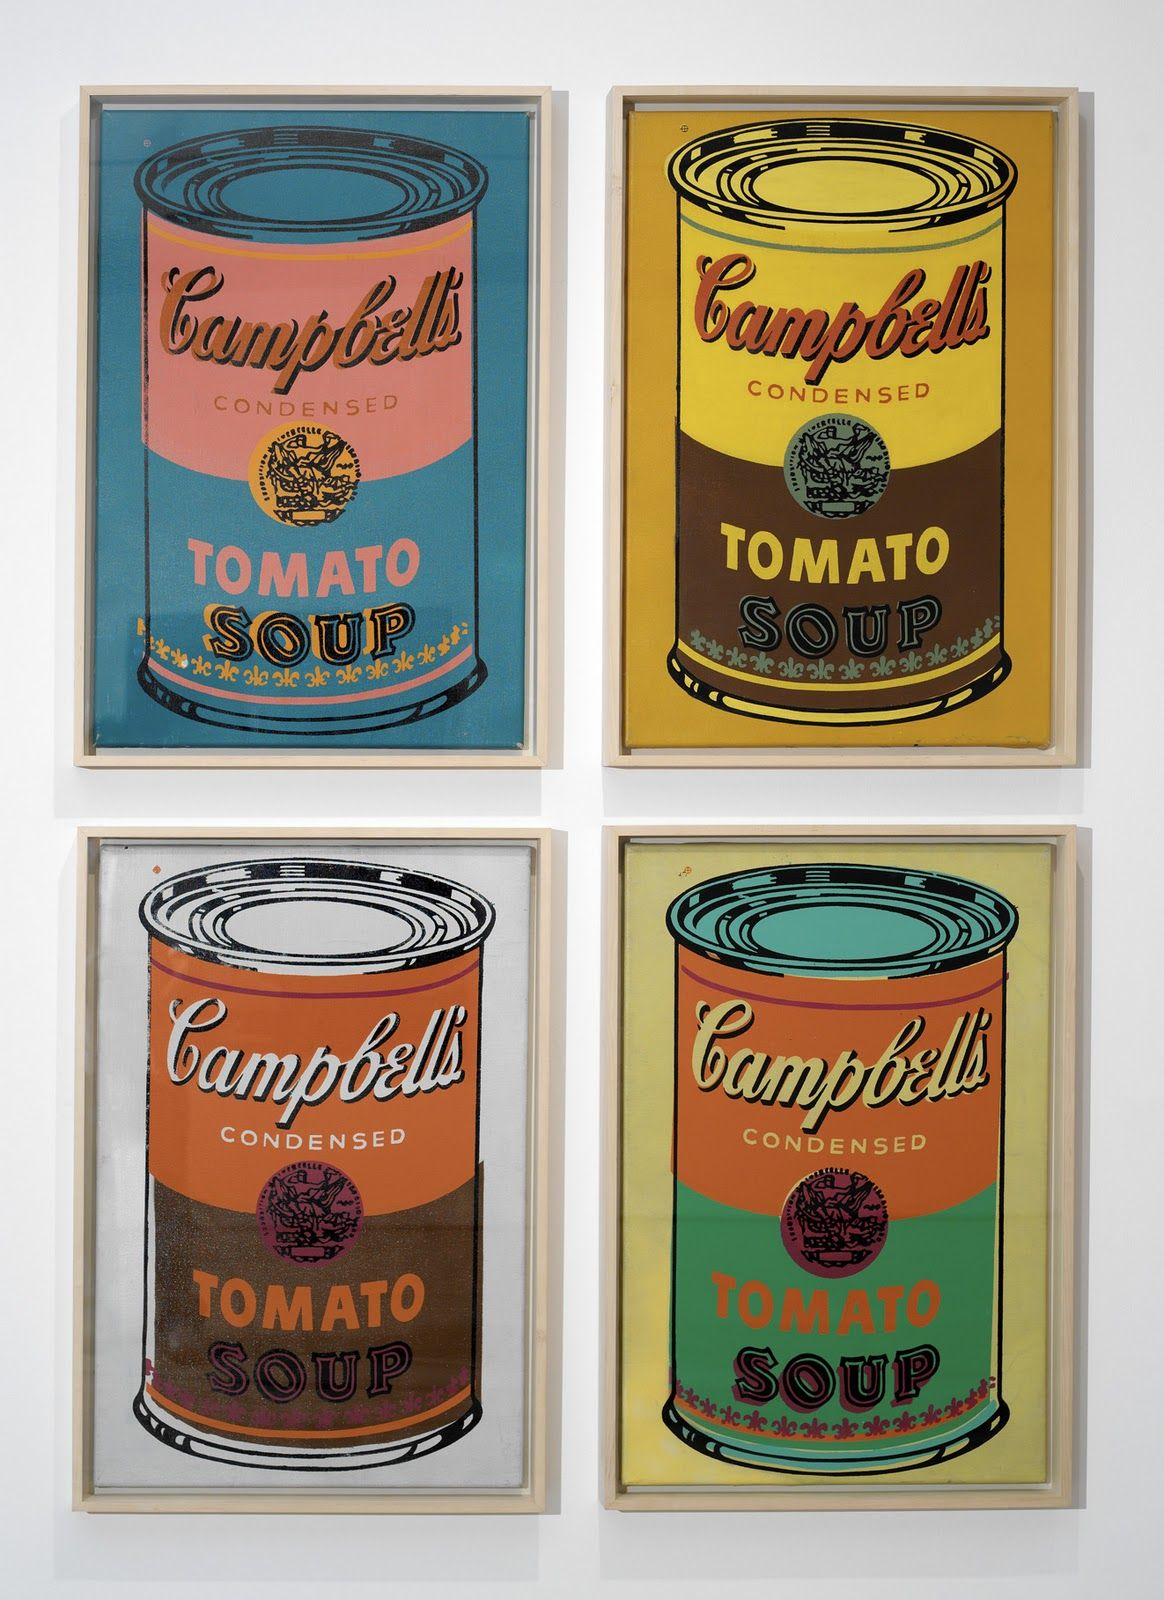 Andy Warhol S Campbell S Soup Can 1963 Andy Warhol Soup Cans Andy Warhol Pop Art Warhol